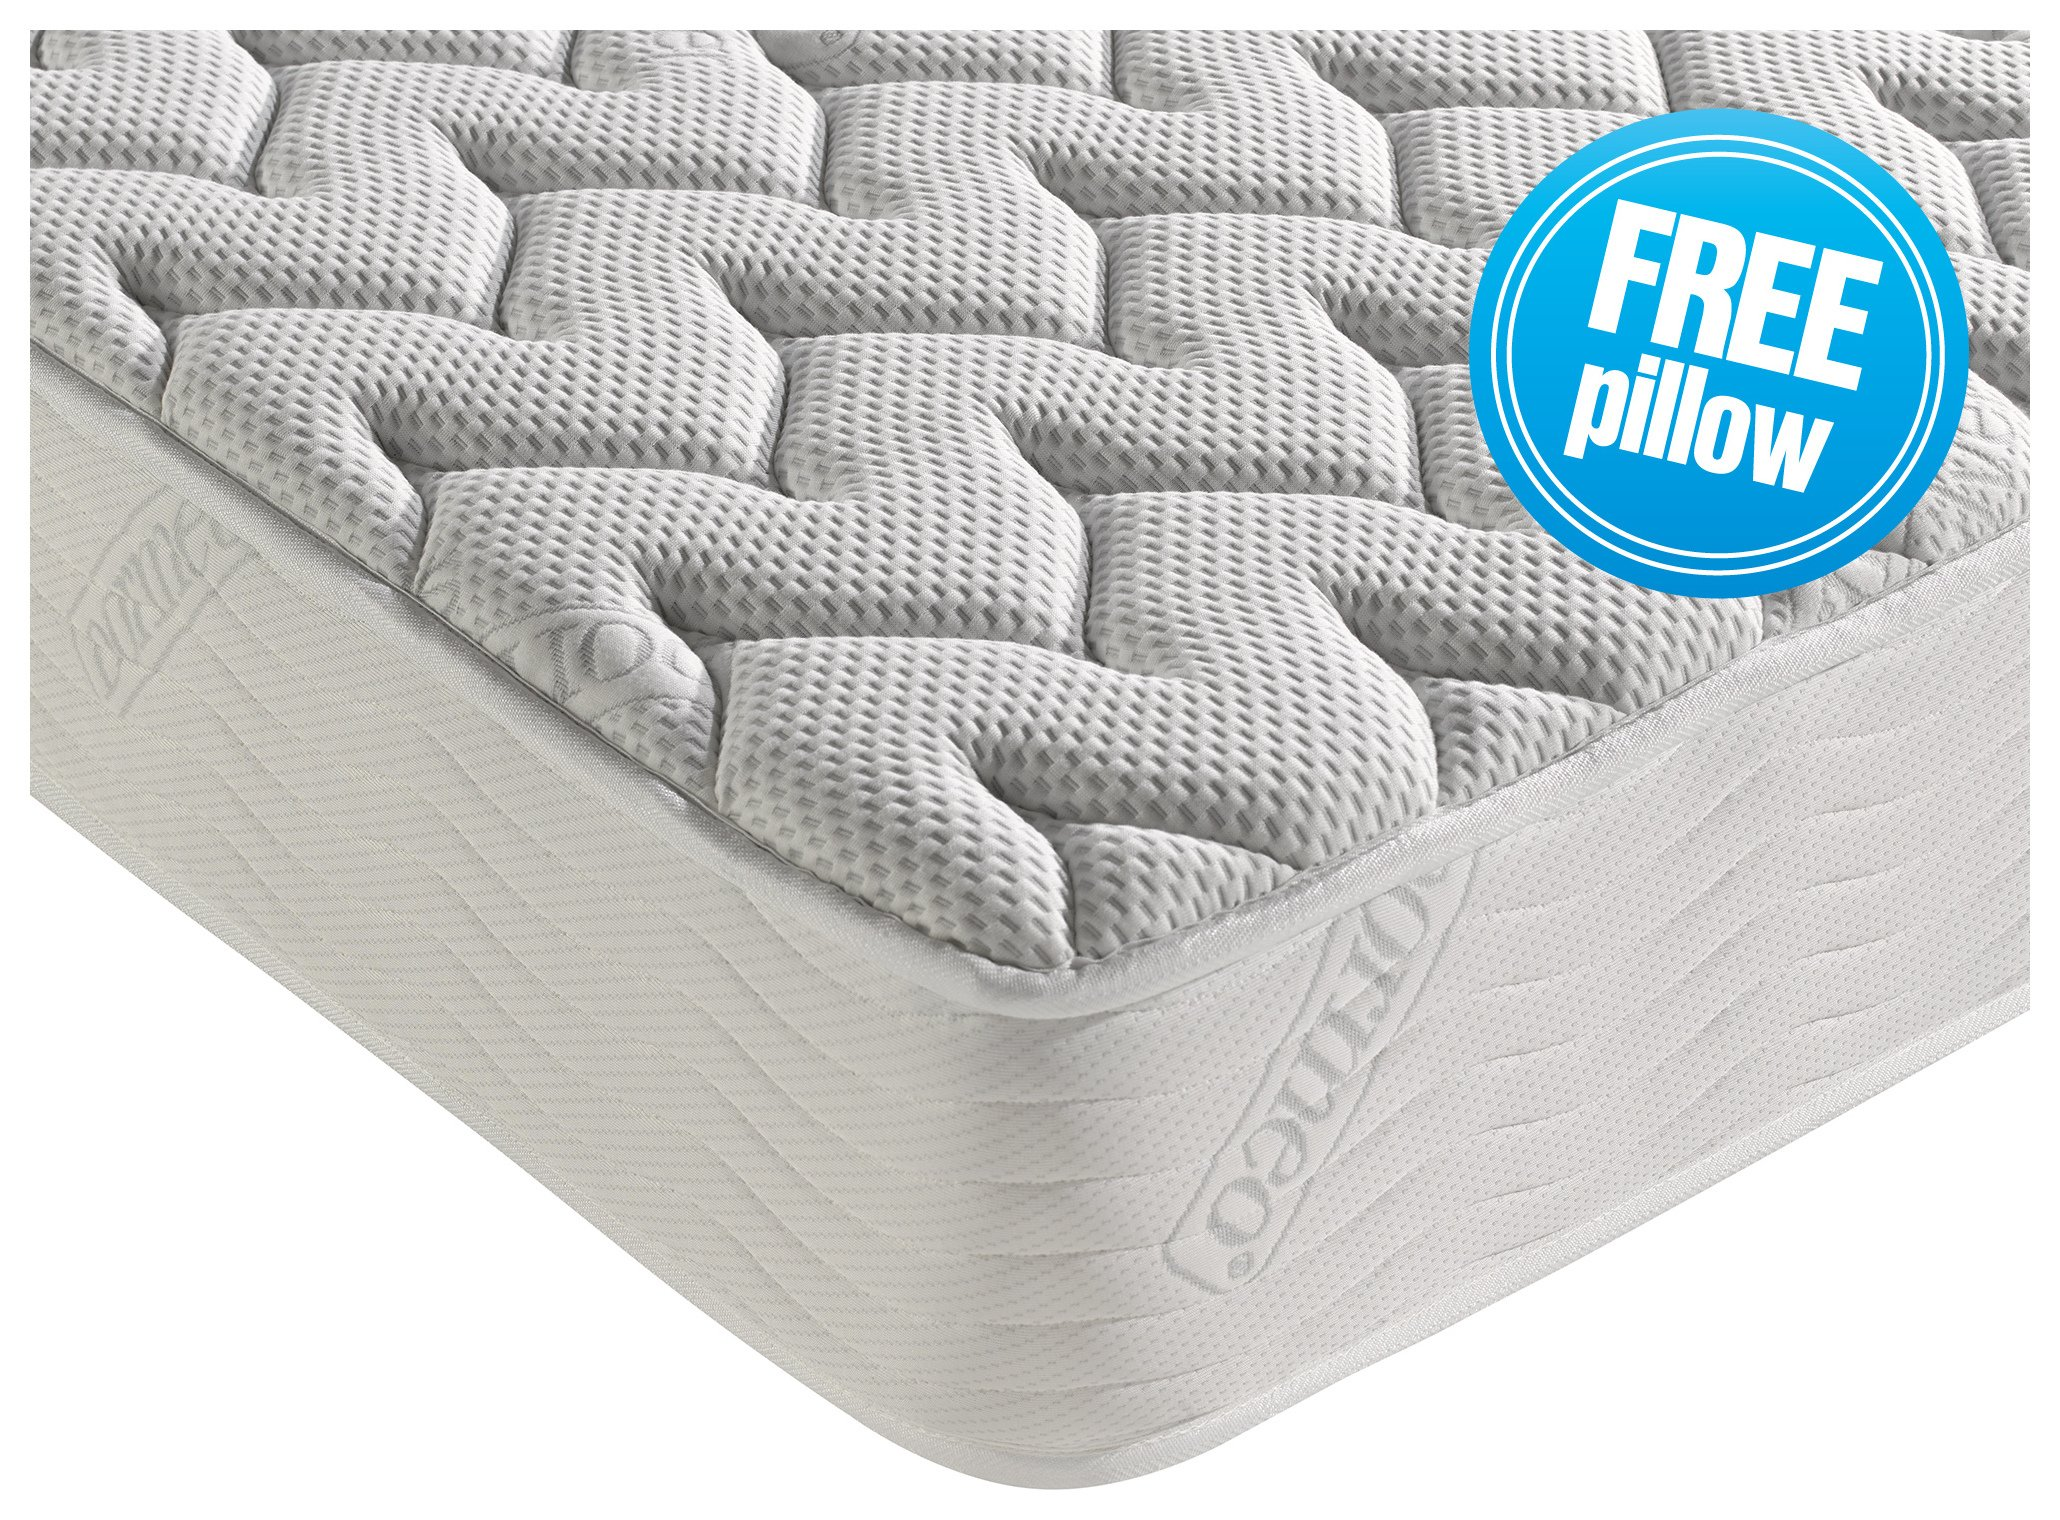 Image of Dormeo - Silver Plus - Superking Mattress